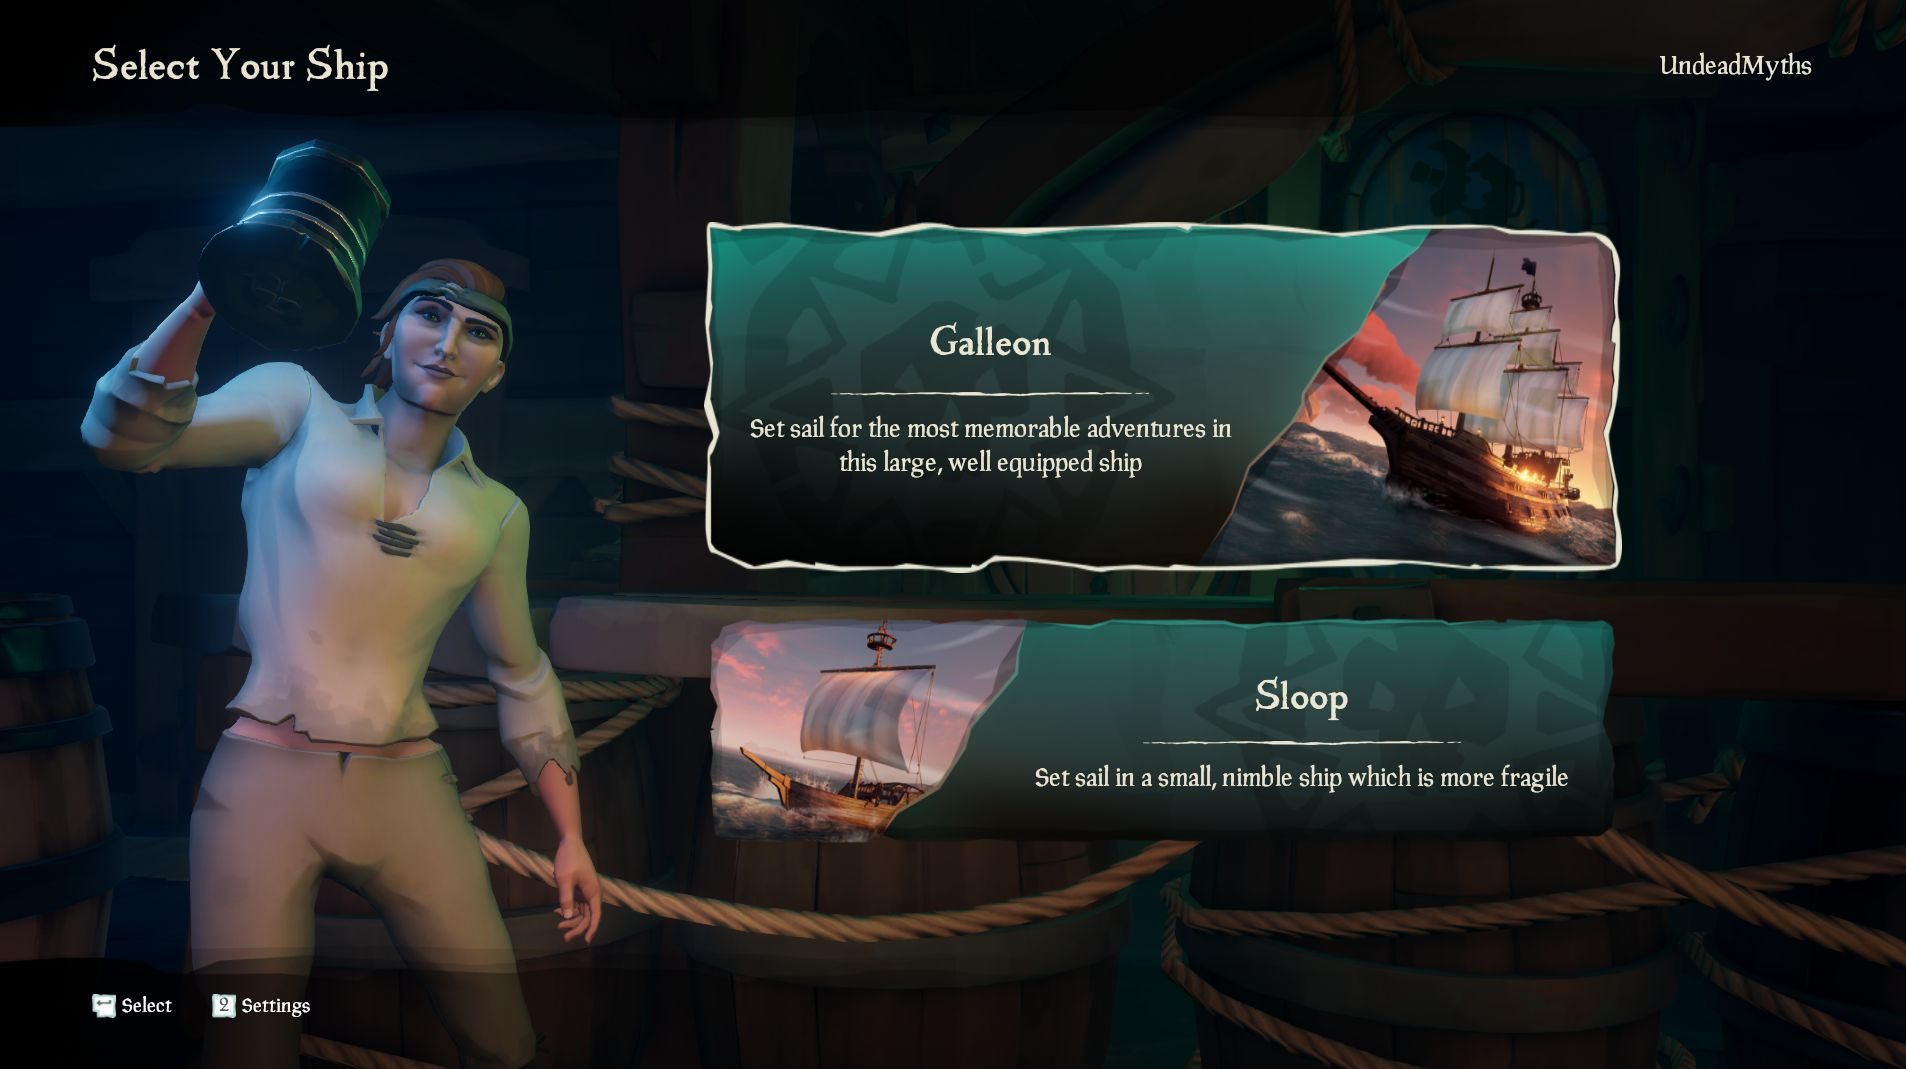 Sea of Thieves Crew Guide - How to Play Sea of Thieves